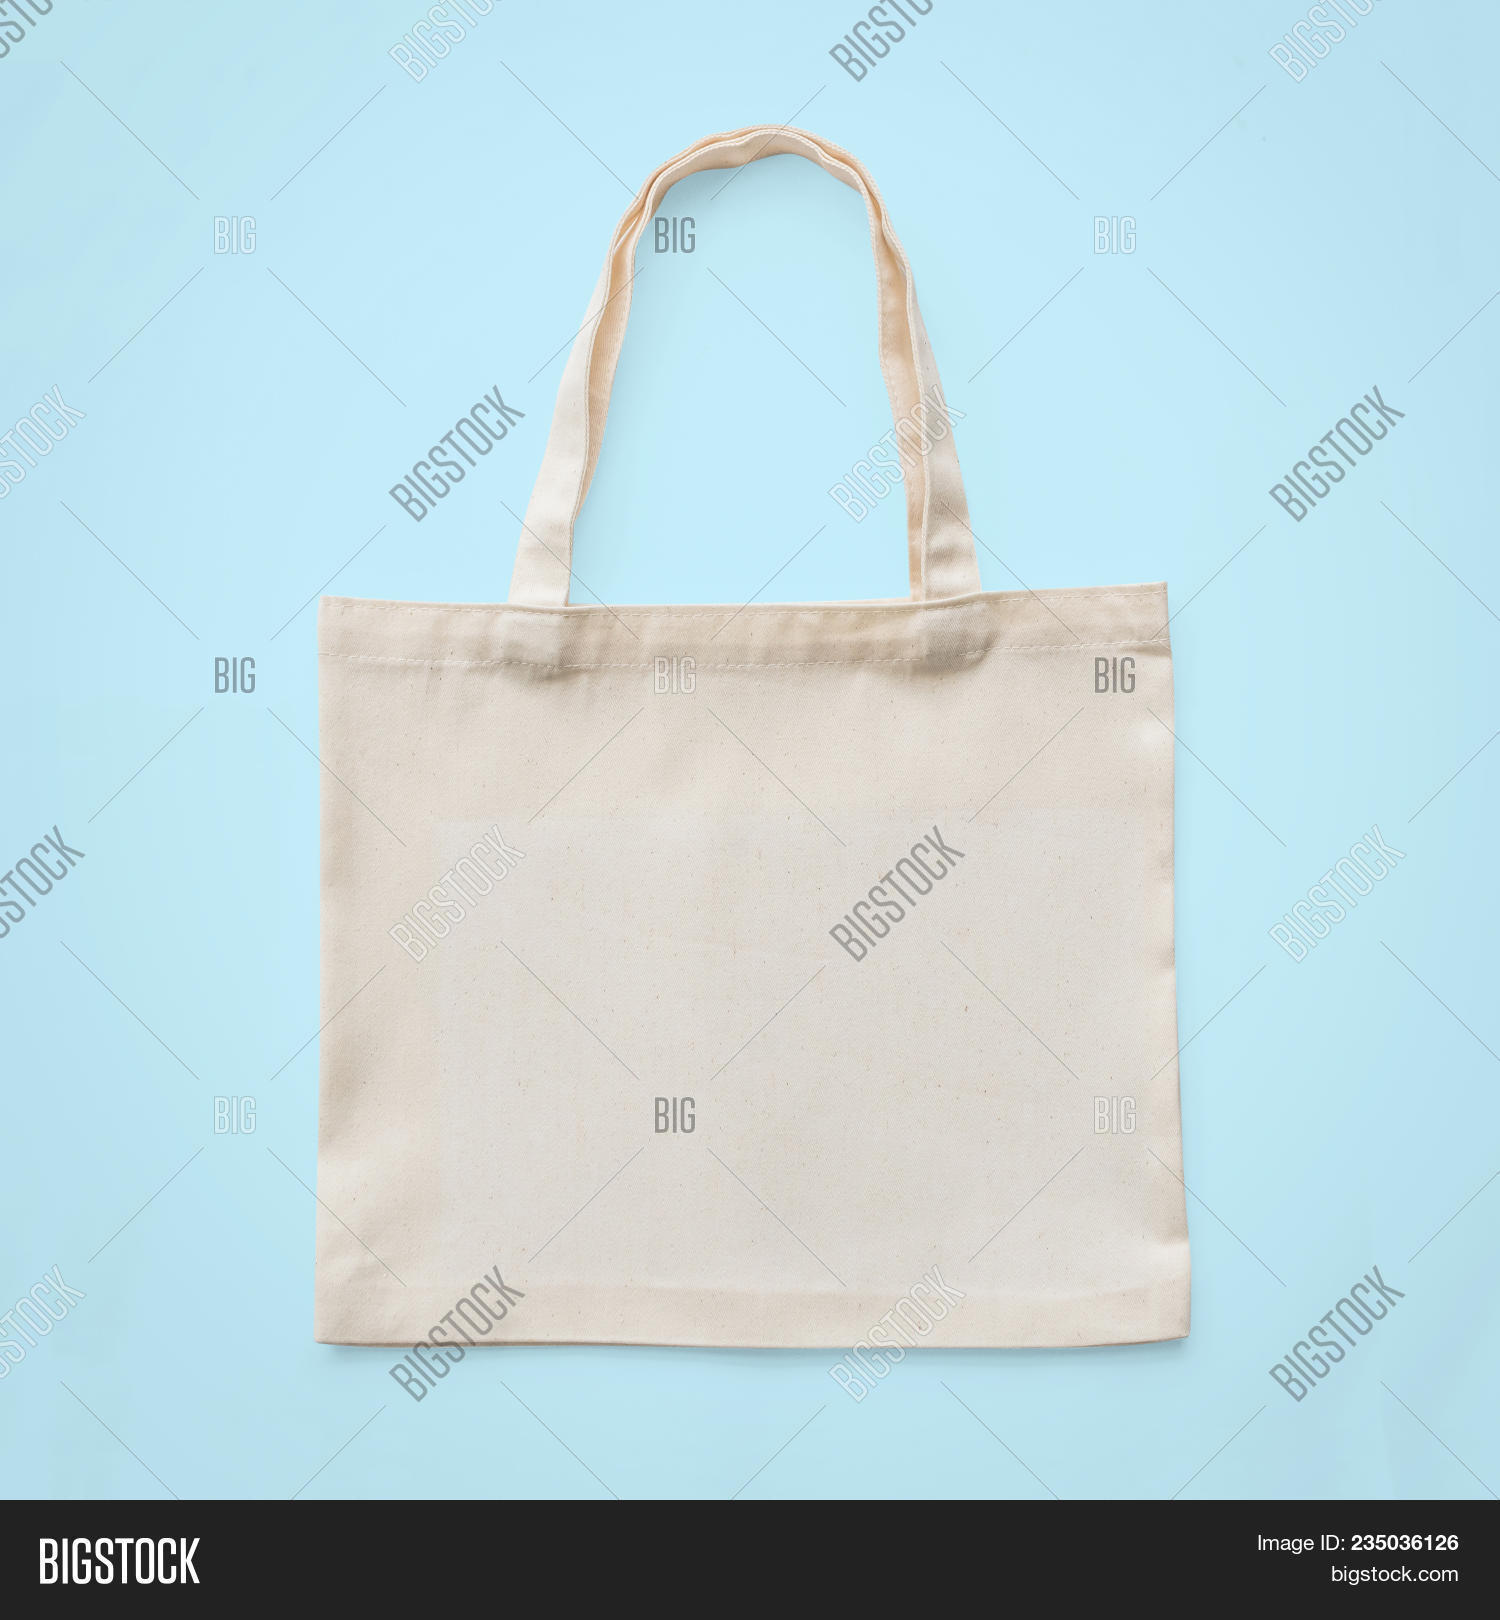 tote bag mock up canvas white cotton fabric cloth for eco shoulder shopping sack mockup blank